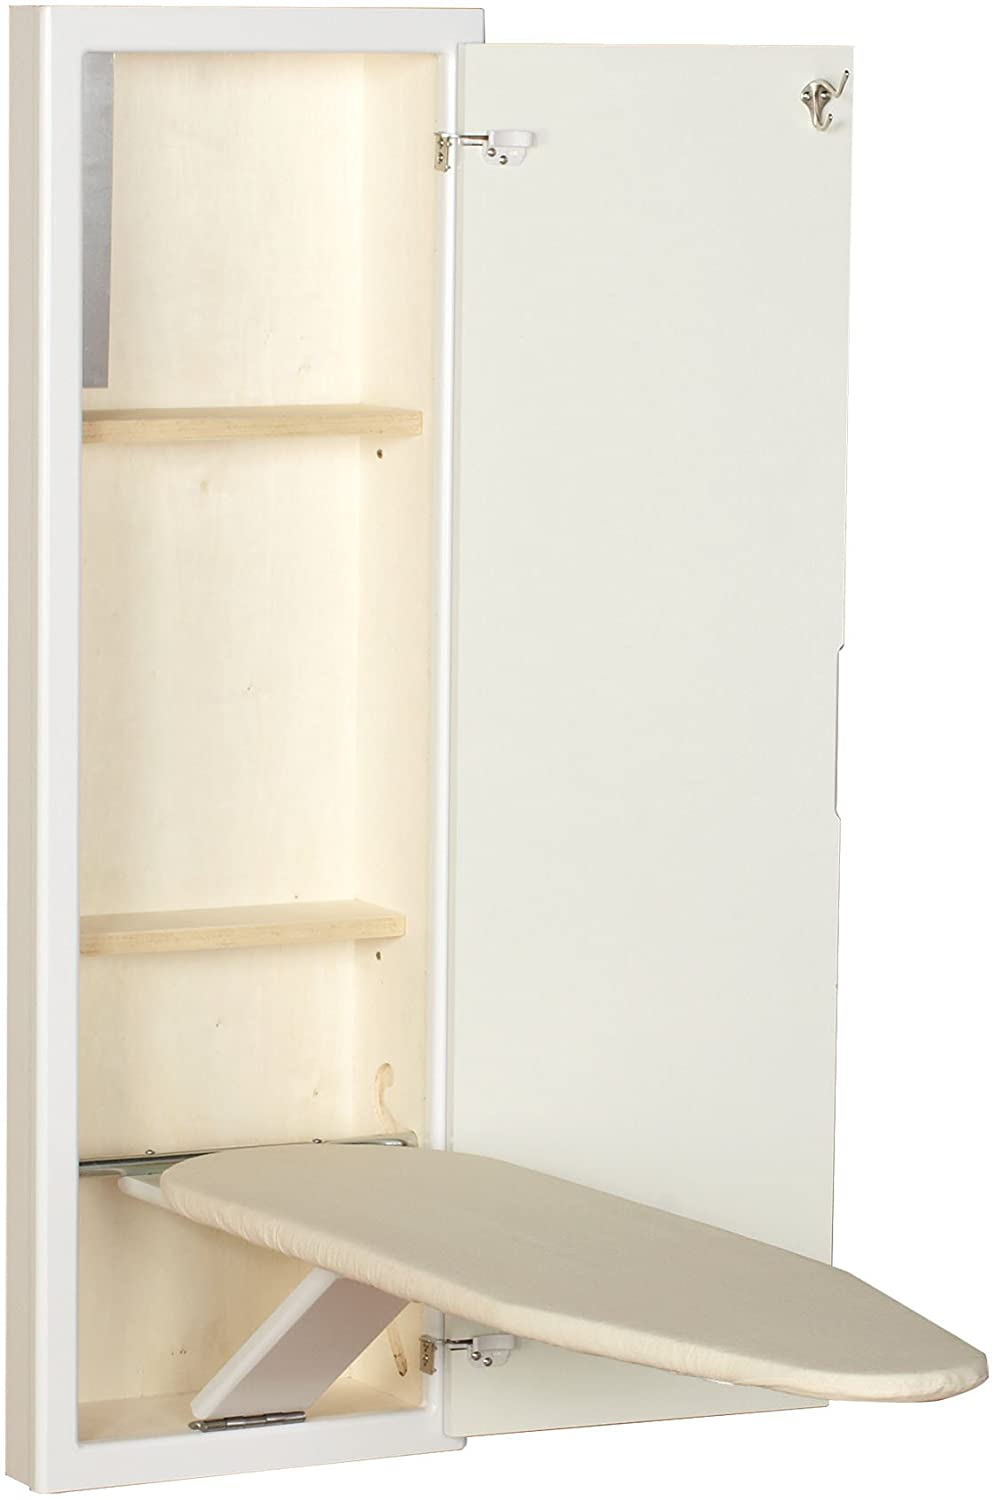 Household Essentials In-Wall Ironing Board